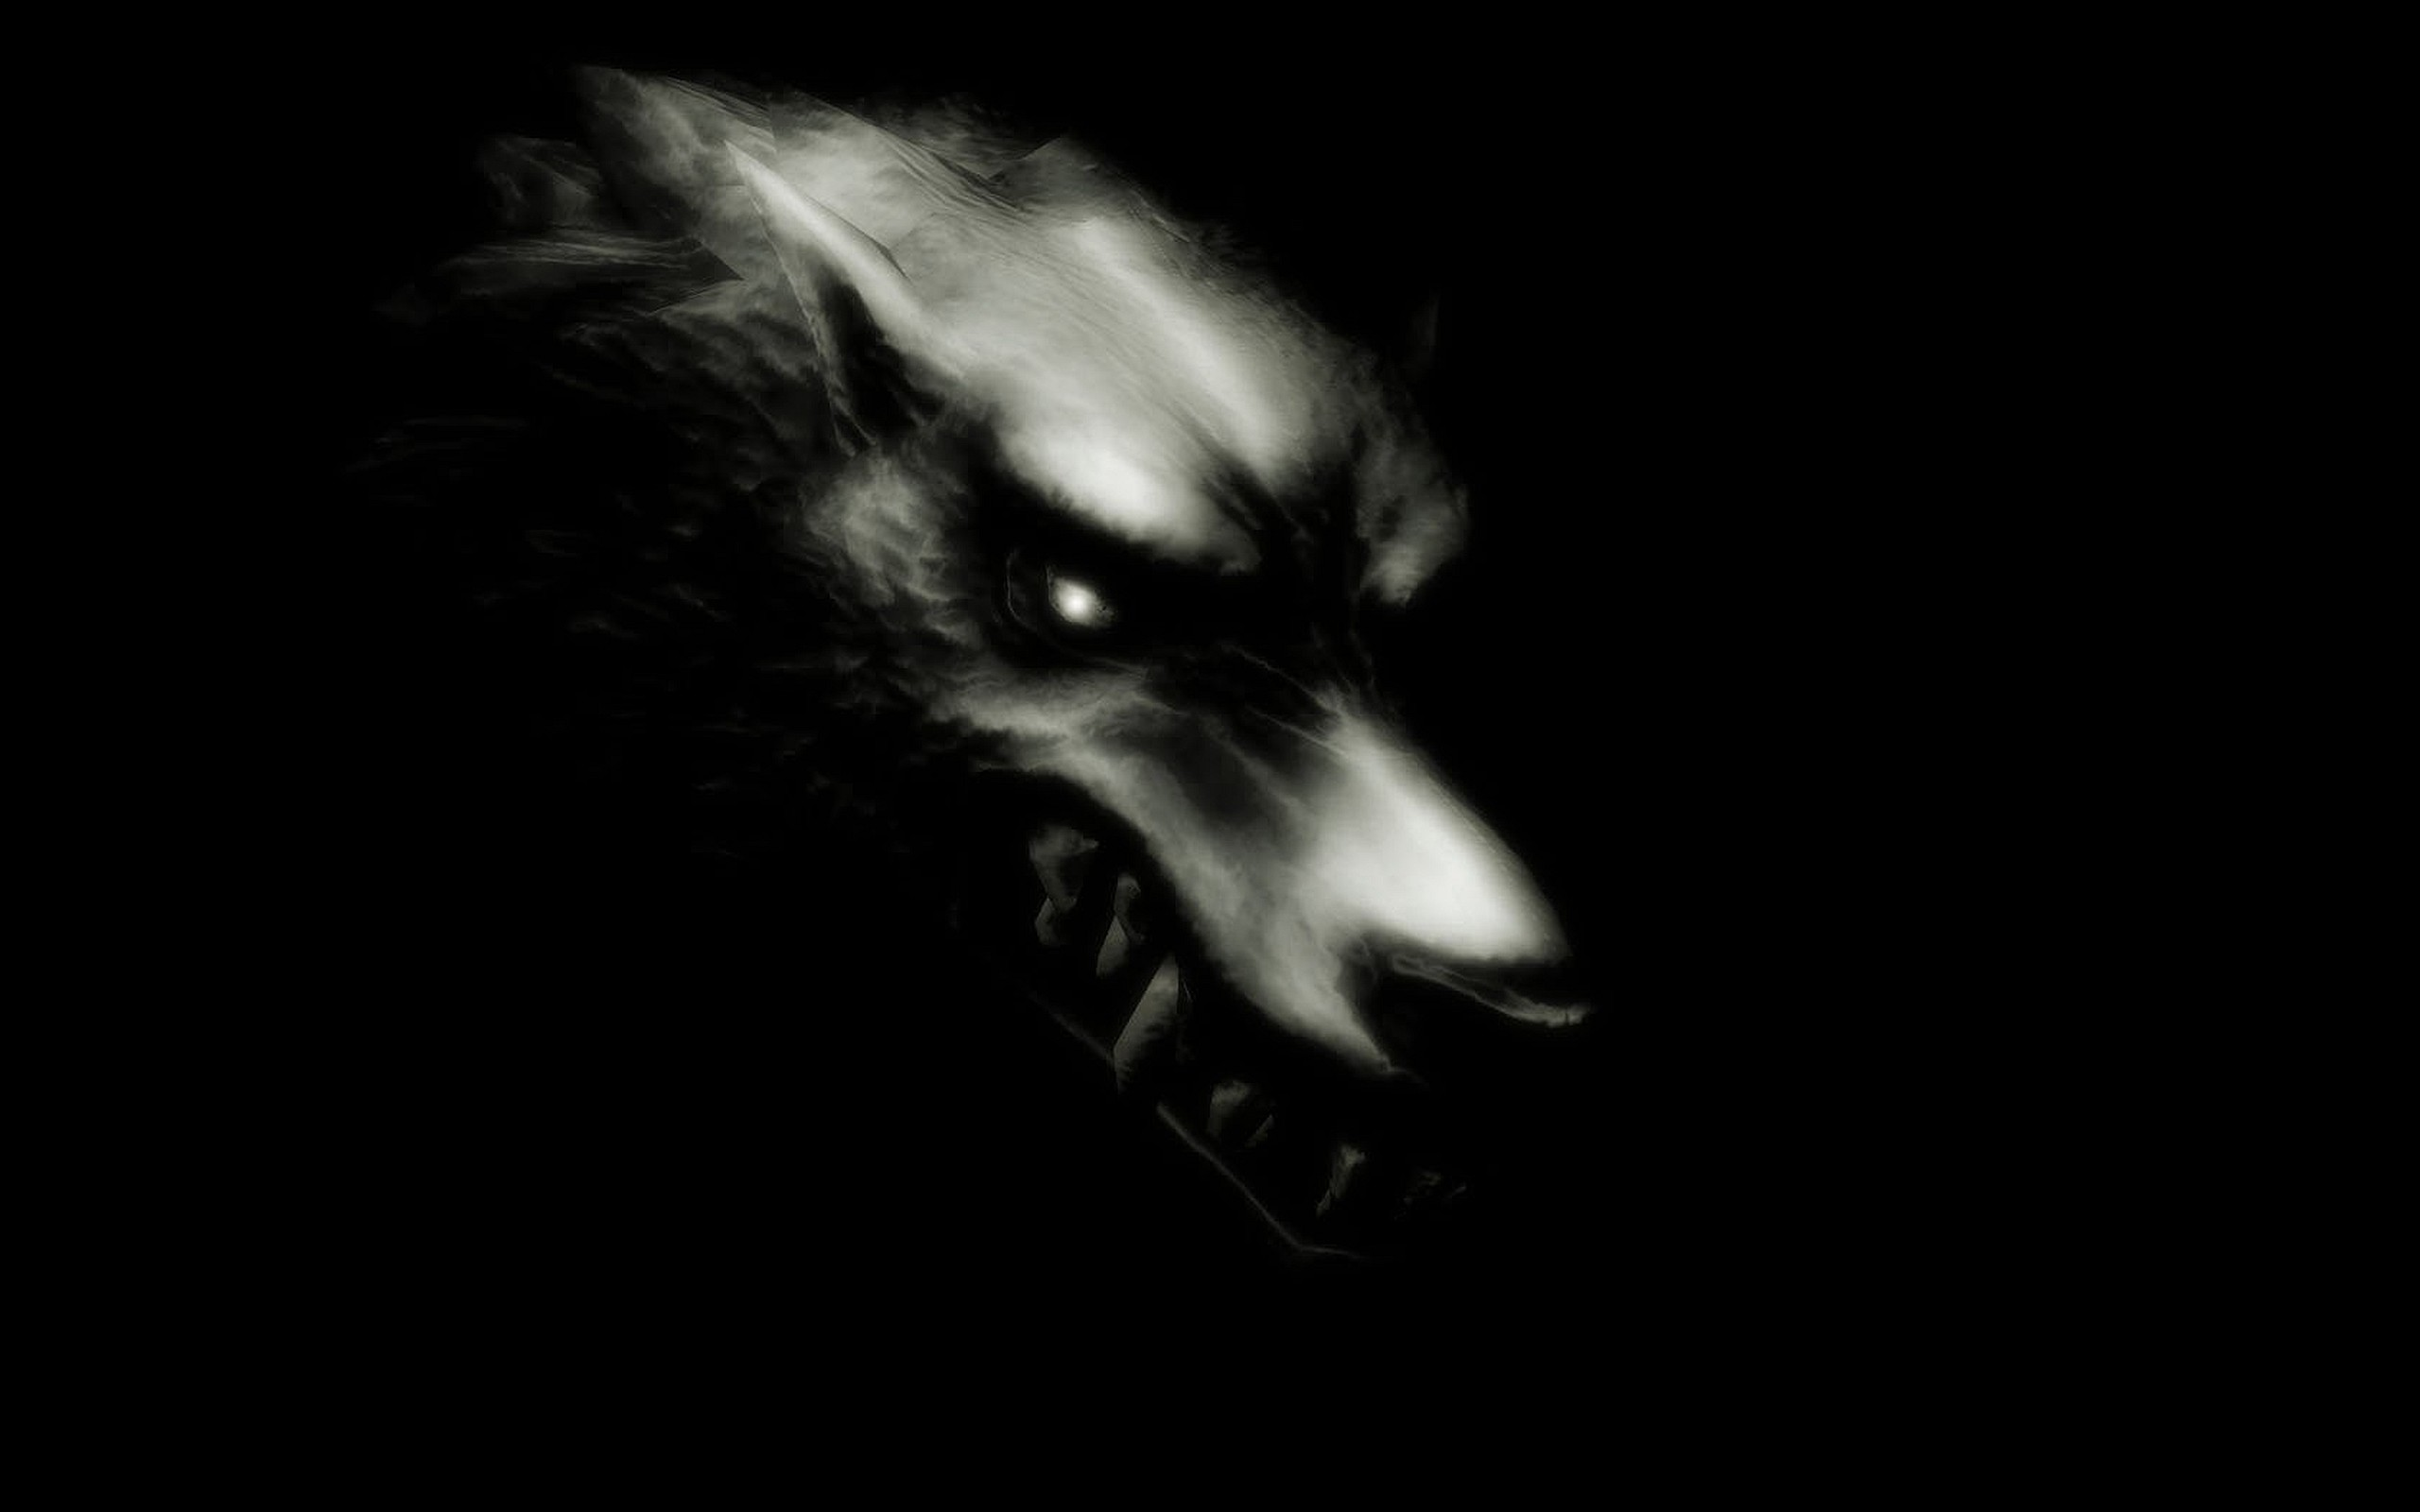 2560x1600 Van Helsing Werewolf Wallpapers Wallpaper | HD Wallpapers | Pinterest |  Werewolves, Hd wallpaper and Wallpaper